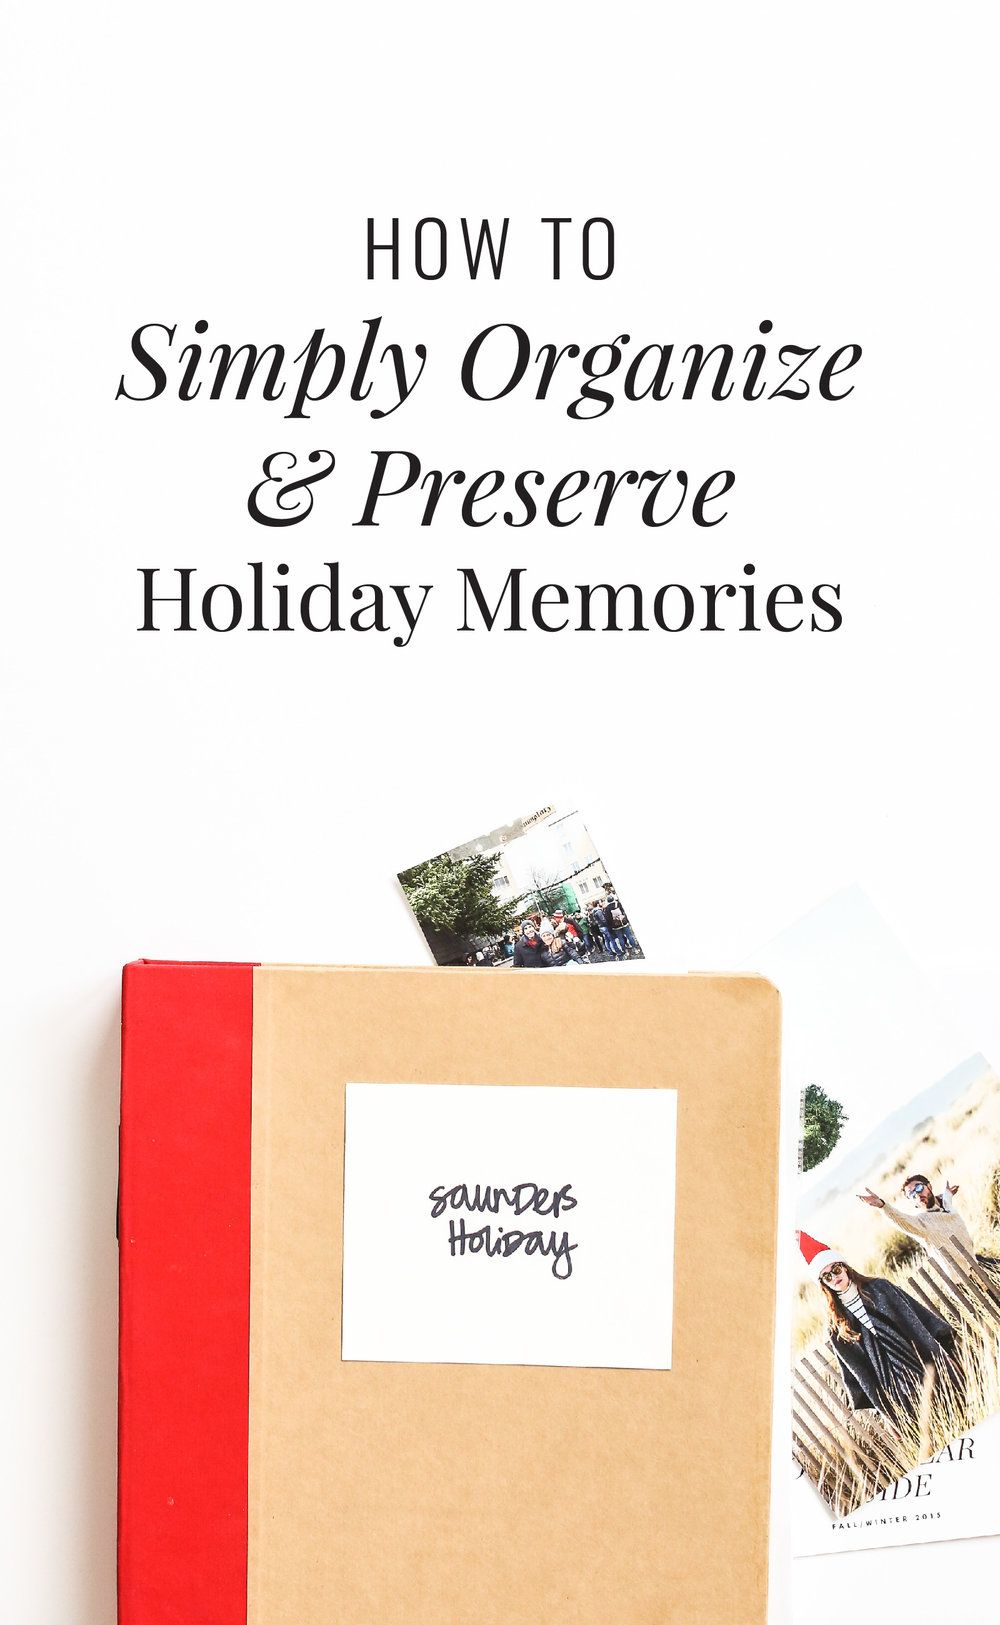 How to simply organize and preserve holiday memories - from Catherine Saunders